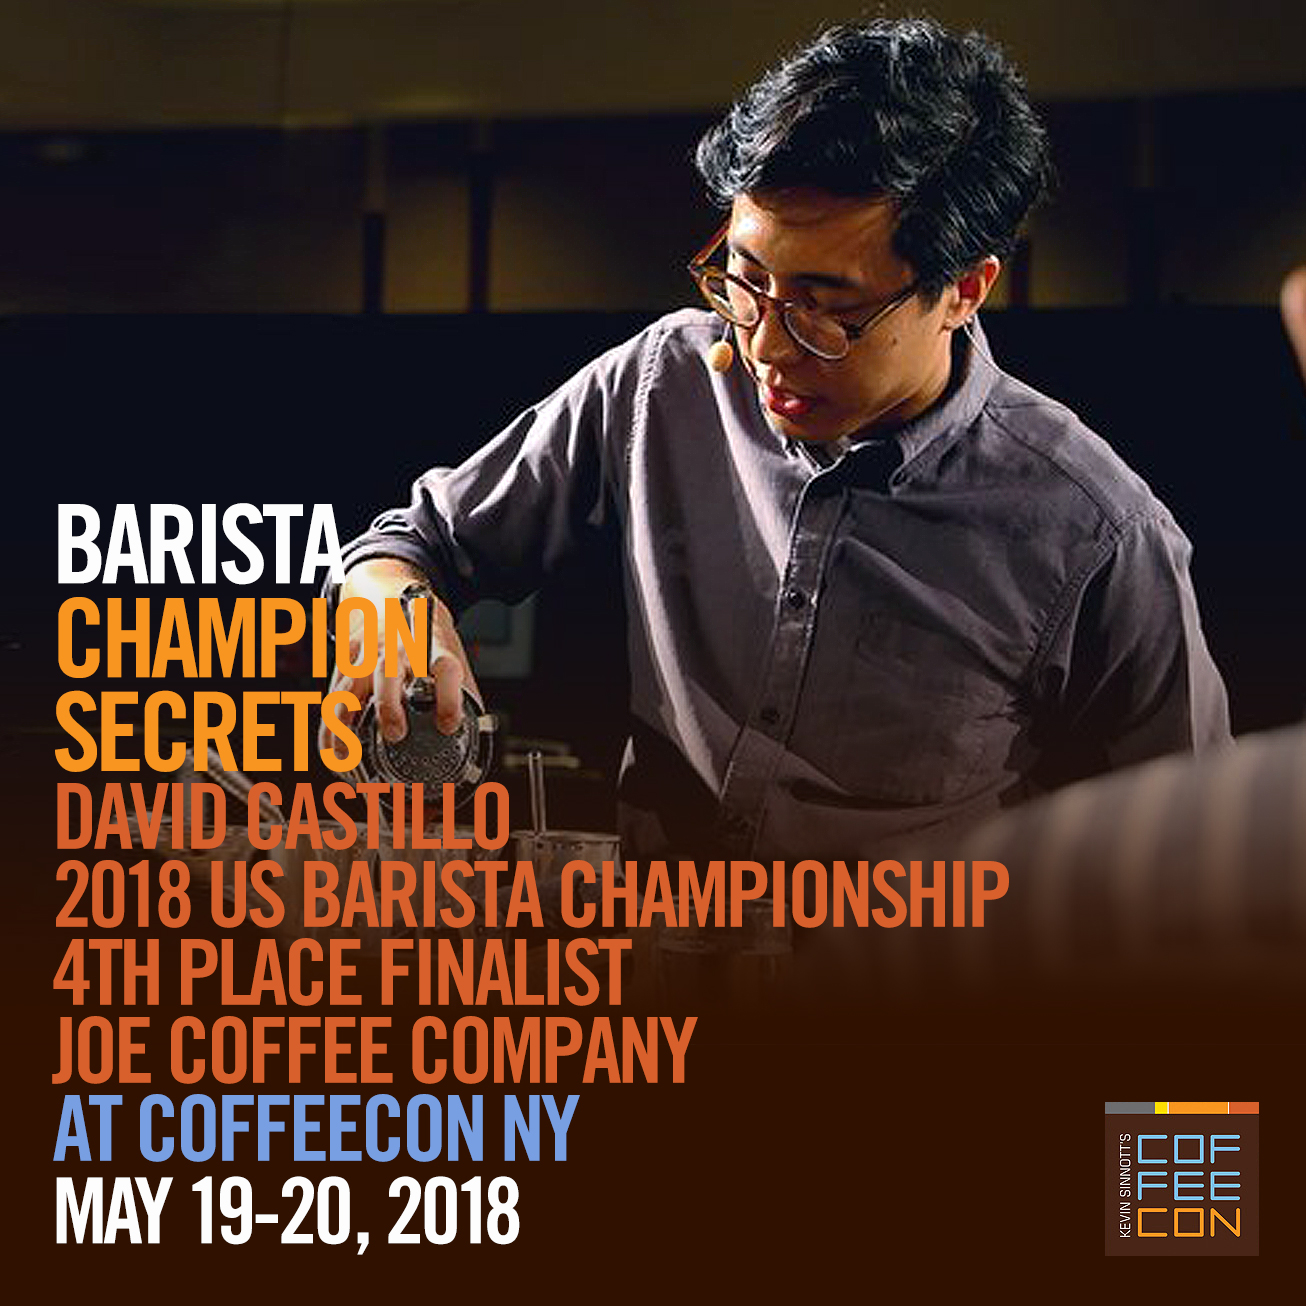 Barista Champion Secrets with David Castillo at CoffeeConNY